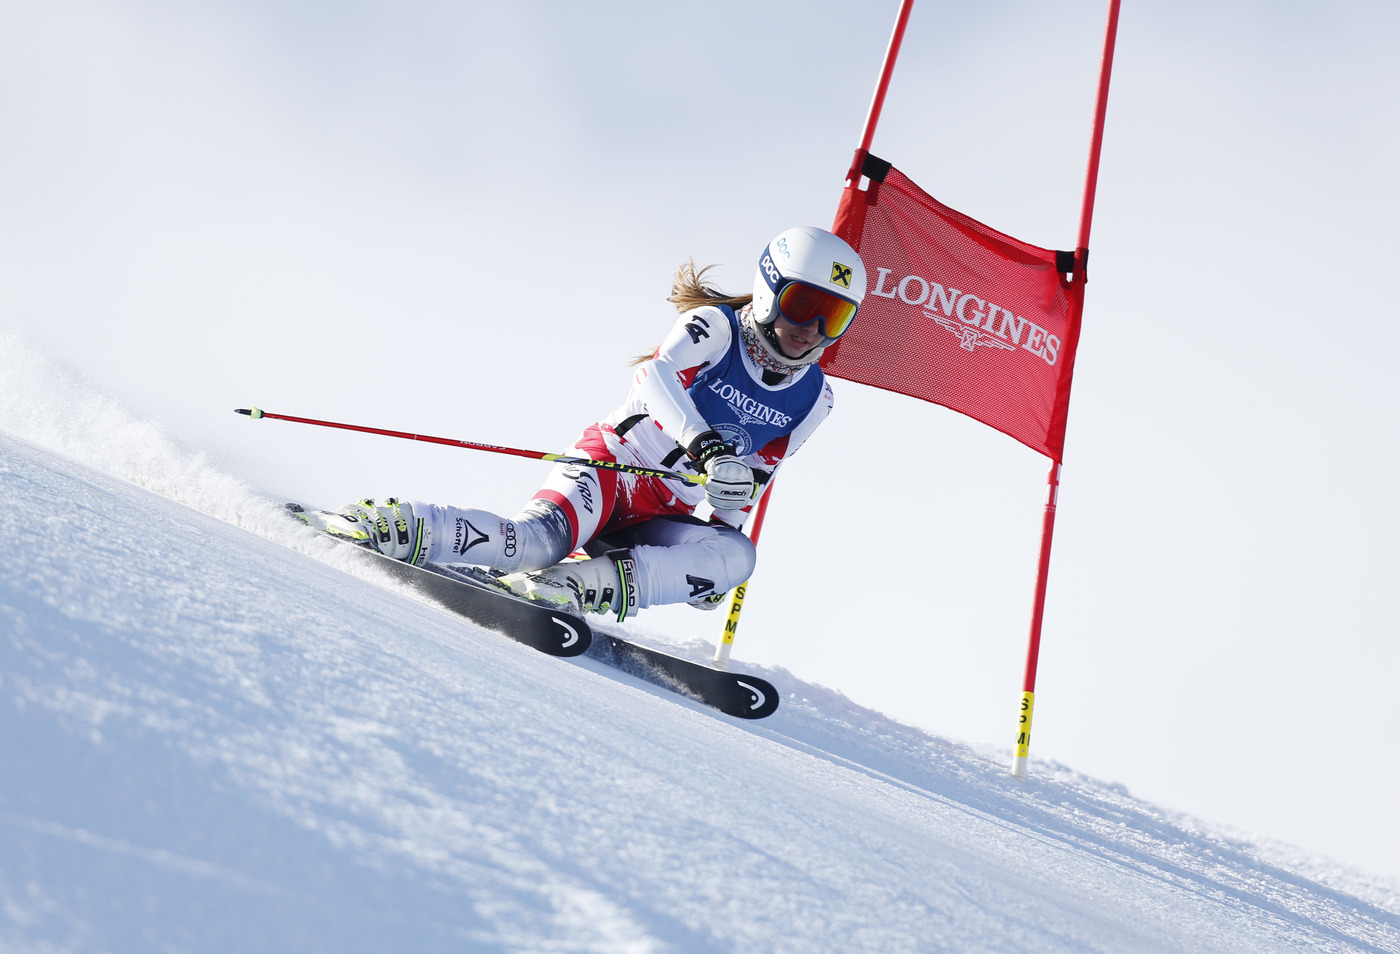 Longines Alpine Skiing Event: LONGINES FUTURE SKI CHAMPIONS - THE BEST YOUNG FEMALE SKIERS 4